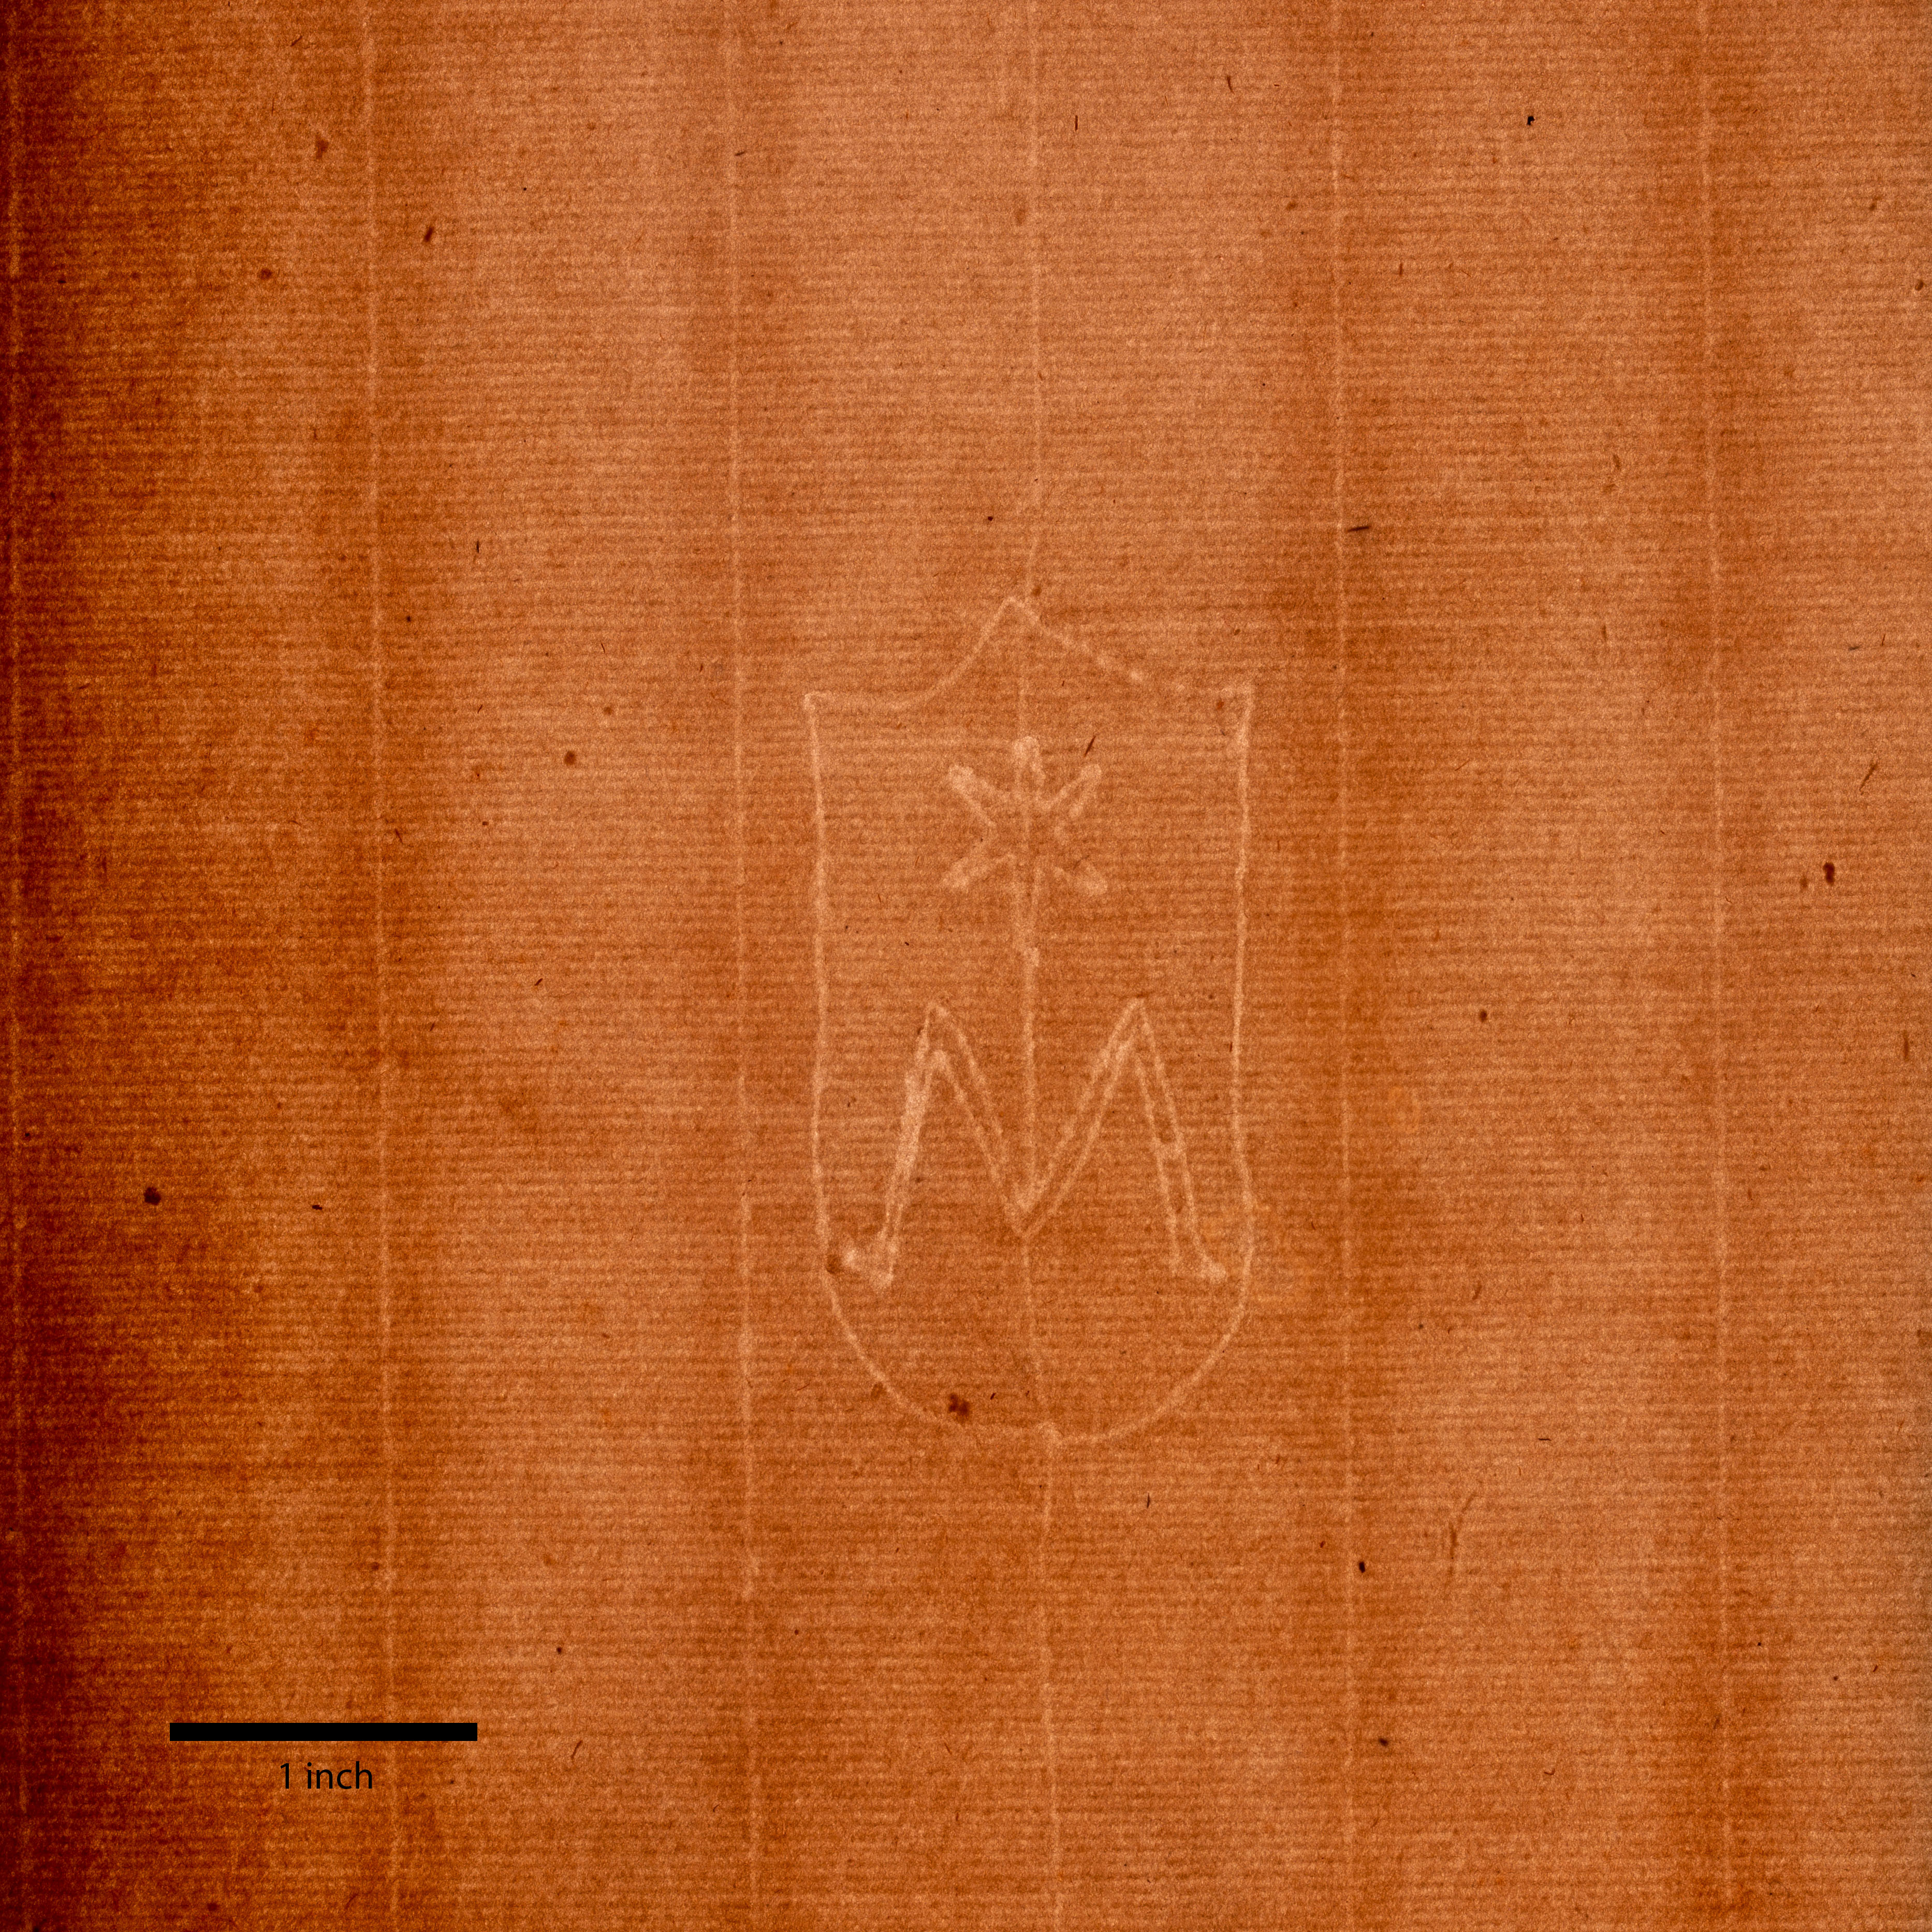 A brown sheet of paper exhibits a regular grid pattern and, in its center, a shield with a capital letter M from which a star rises. A thick black line marks one inch at bottom left.